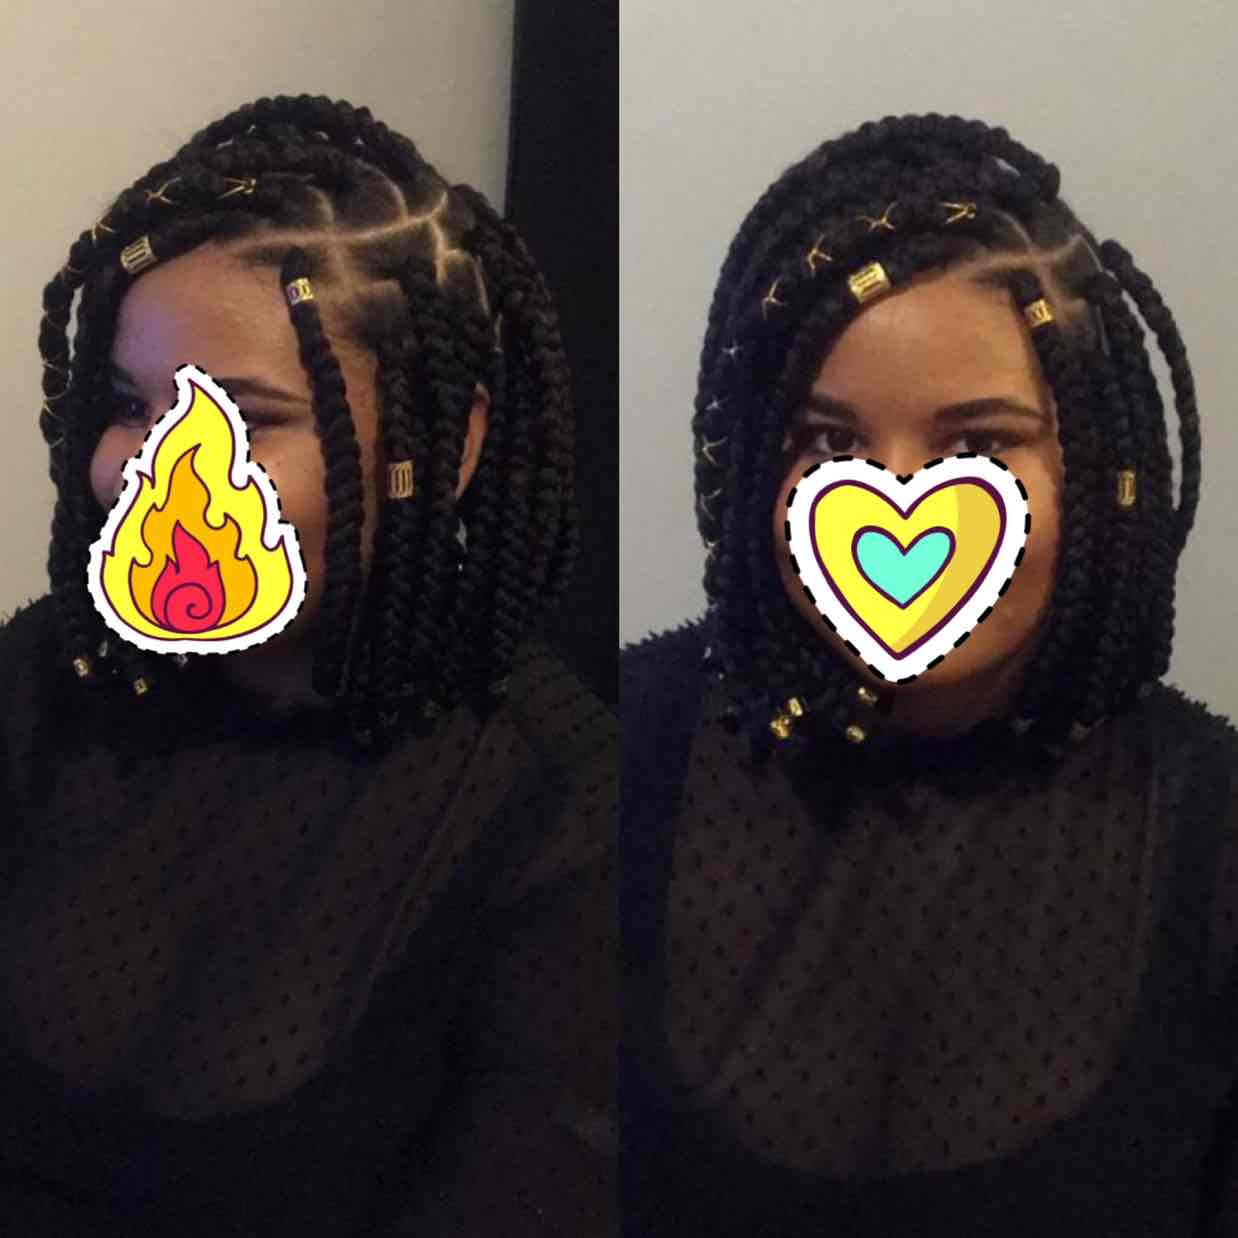 salon de coiffure afro tresse tresses box braids crochet braids vanilles tissages paris 75 77 78 91 92 93 94 95 DEAABNJE